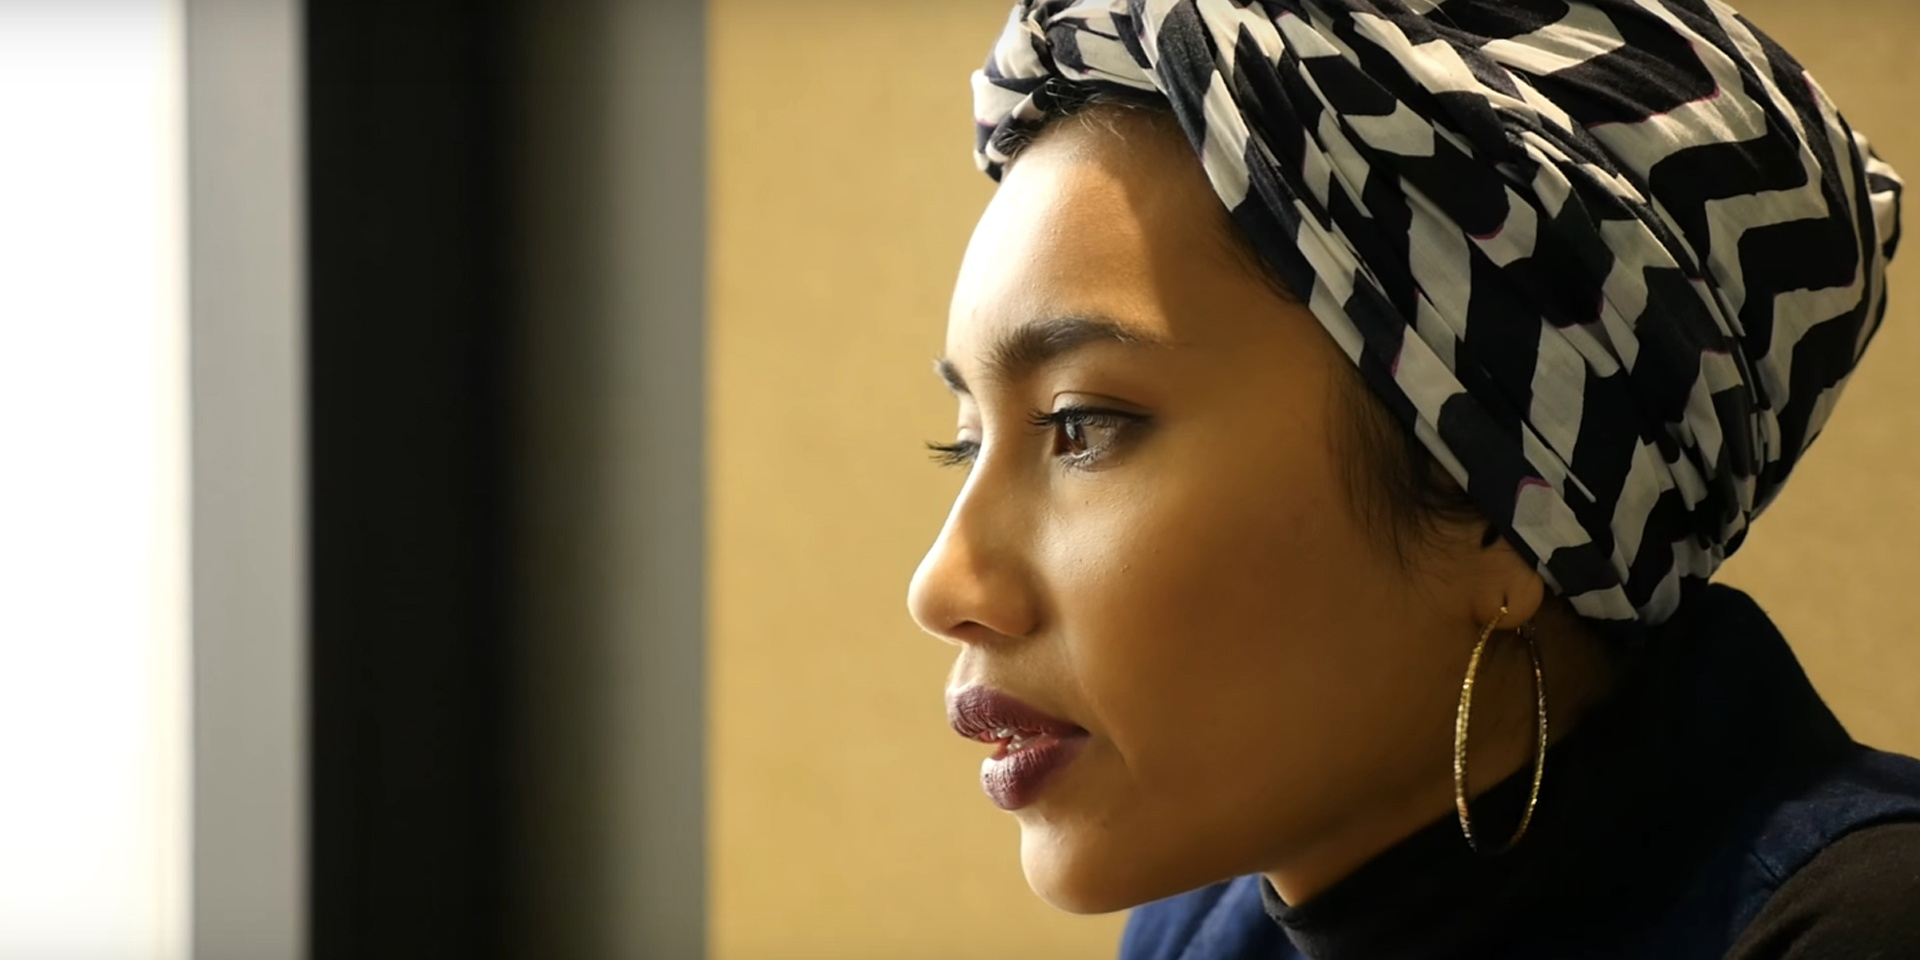 WATCH: Yuna talks about collaborating with Usher, her new 'urban' album and more